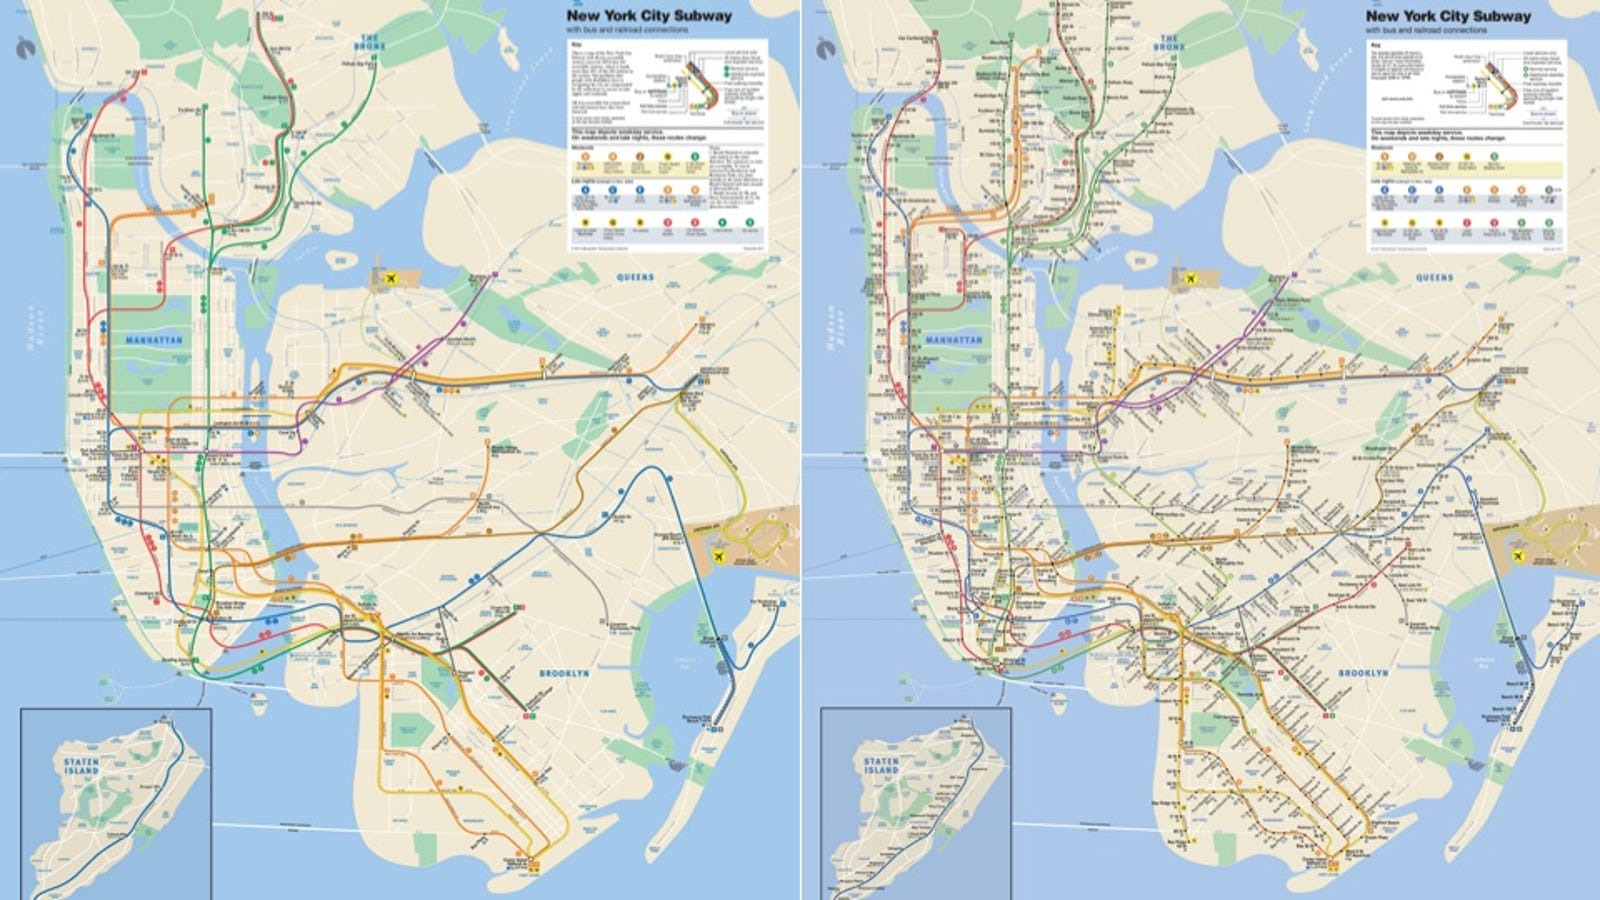 San Diago Subway Map.A Simple Map Shows Just How Shitty The Nyc Subway System Is For